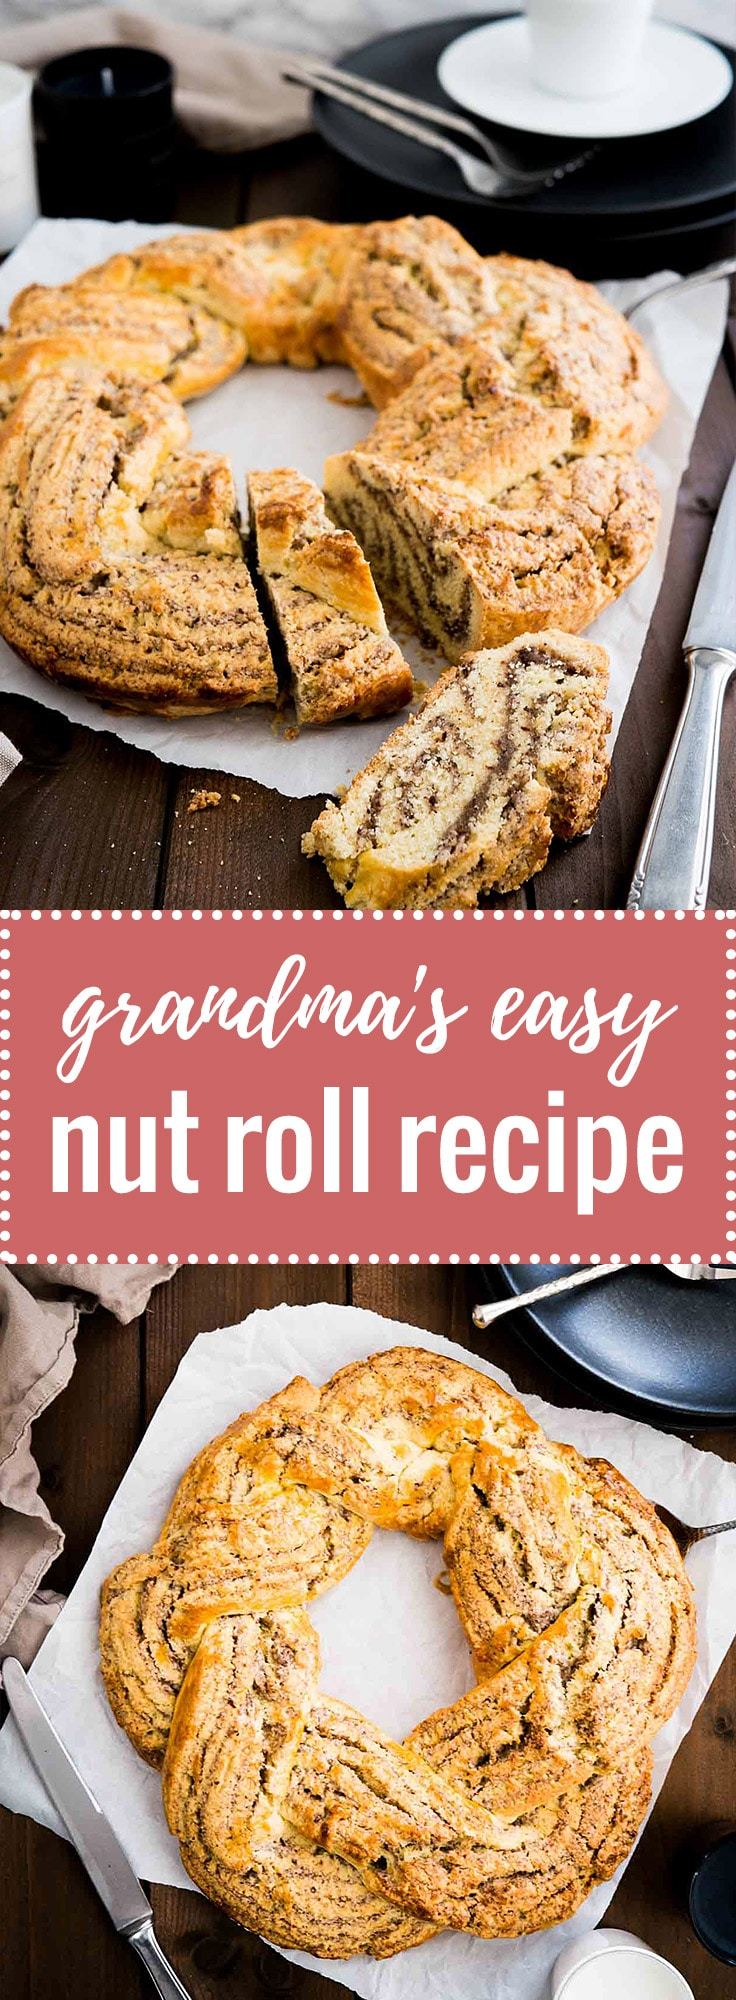 This easy Nut Roll recipe is my husband's grandma's which she makes at every special occasion! It's made without yeast and filled with ground hazelnuts. A perfect Holiday breakfast or dessert!